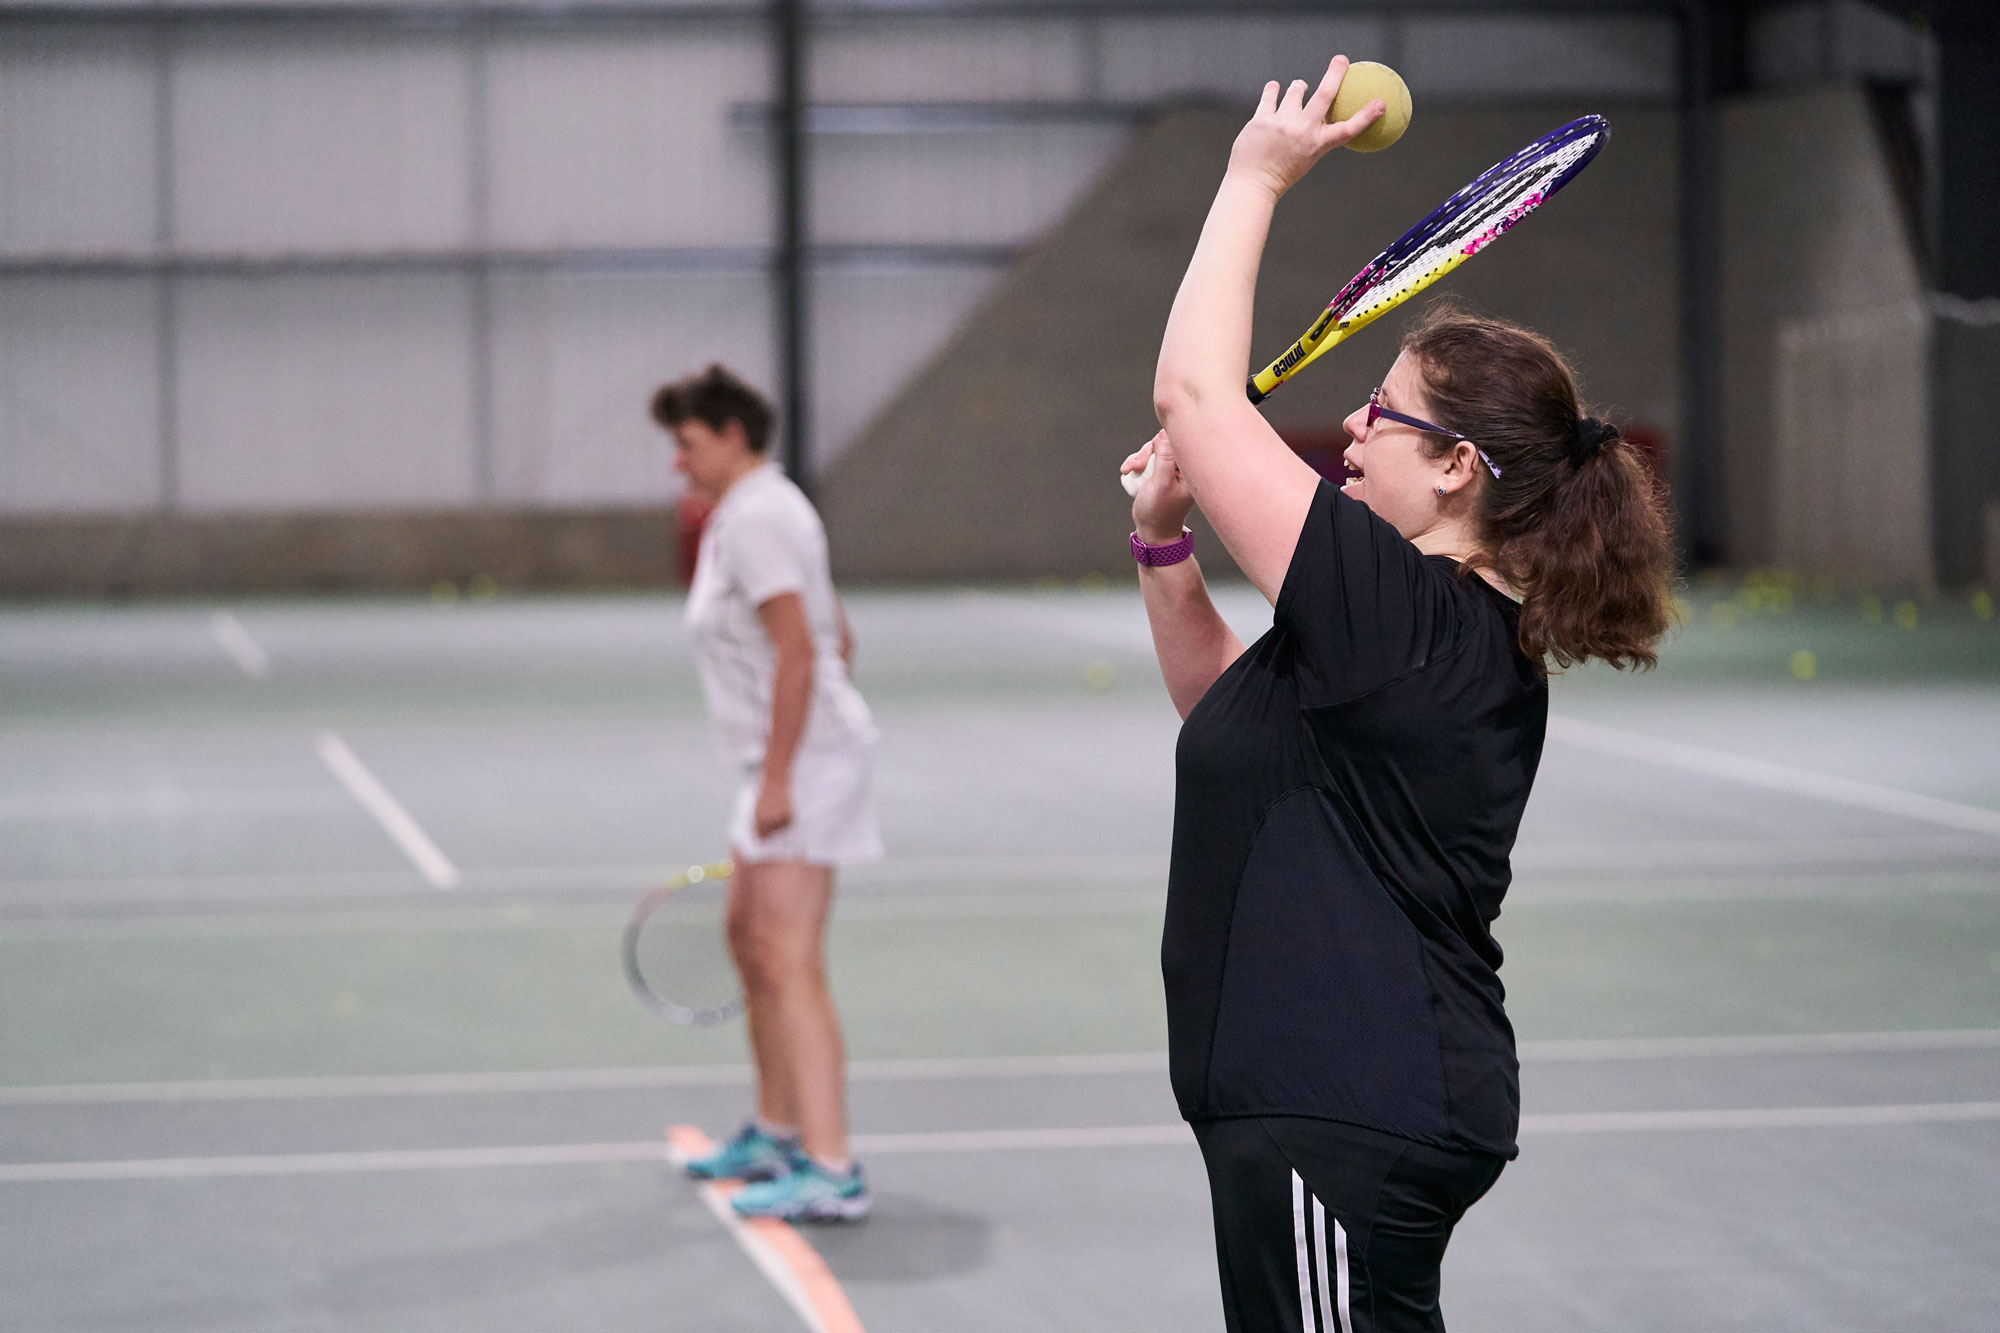 visually impaired woman preparing to hit tennis serve